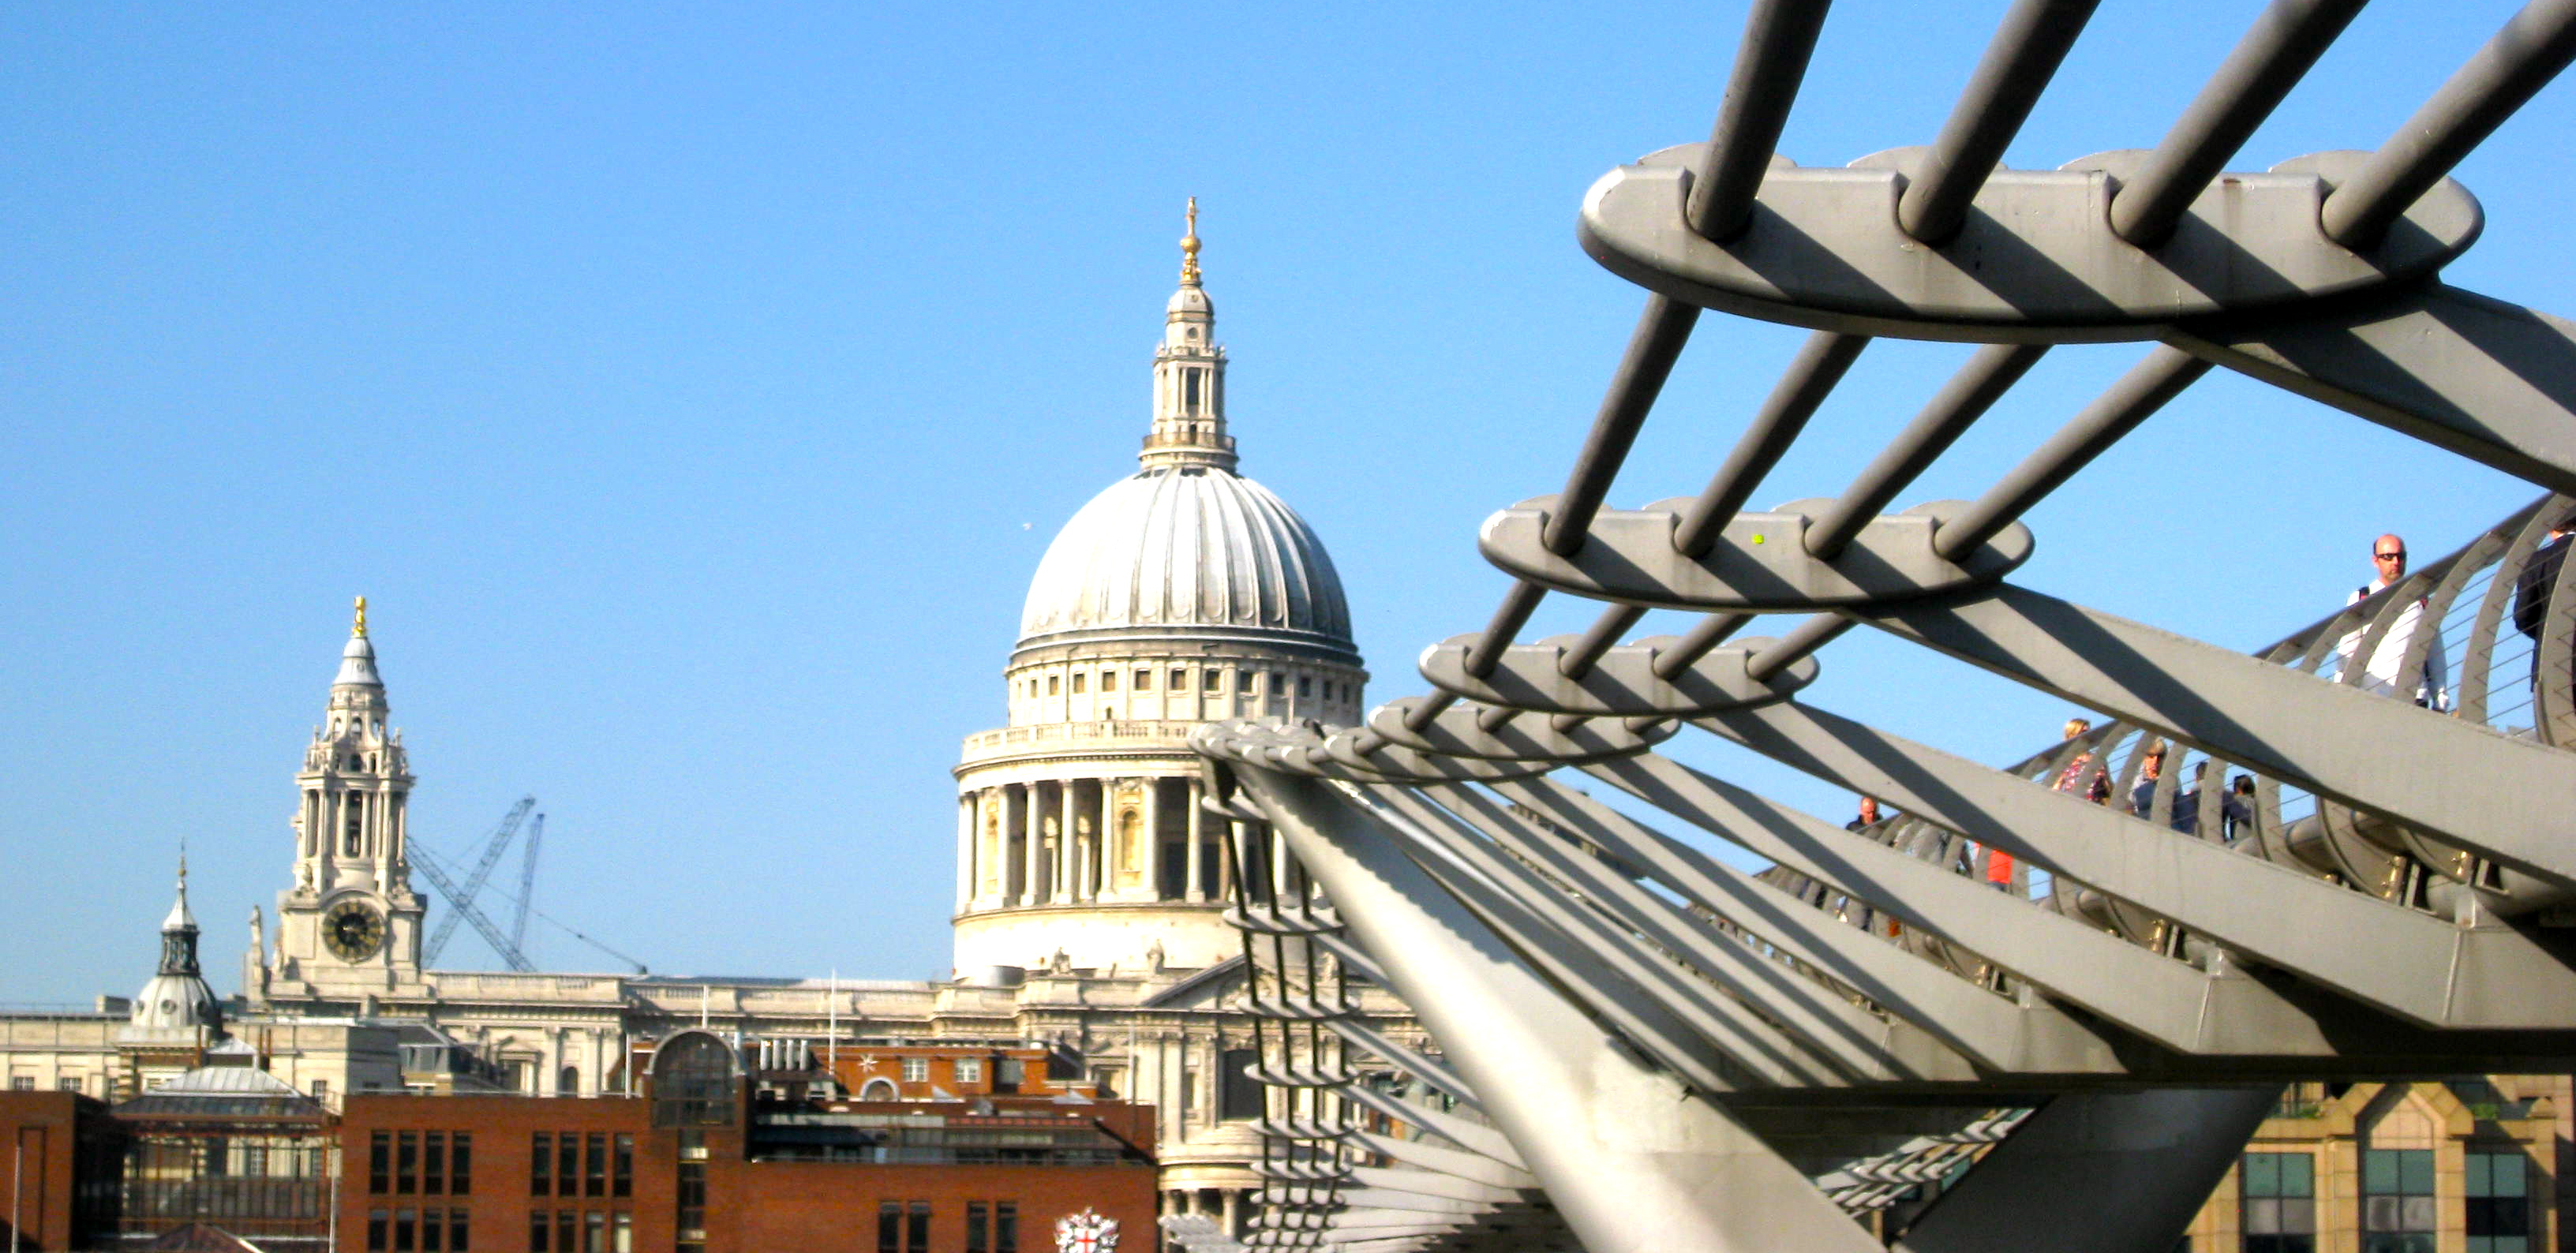 St. Paul's Cathedral as viewed from Millennium Bridge